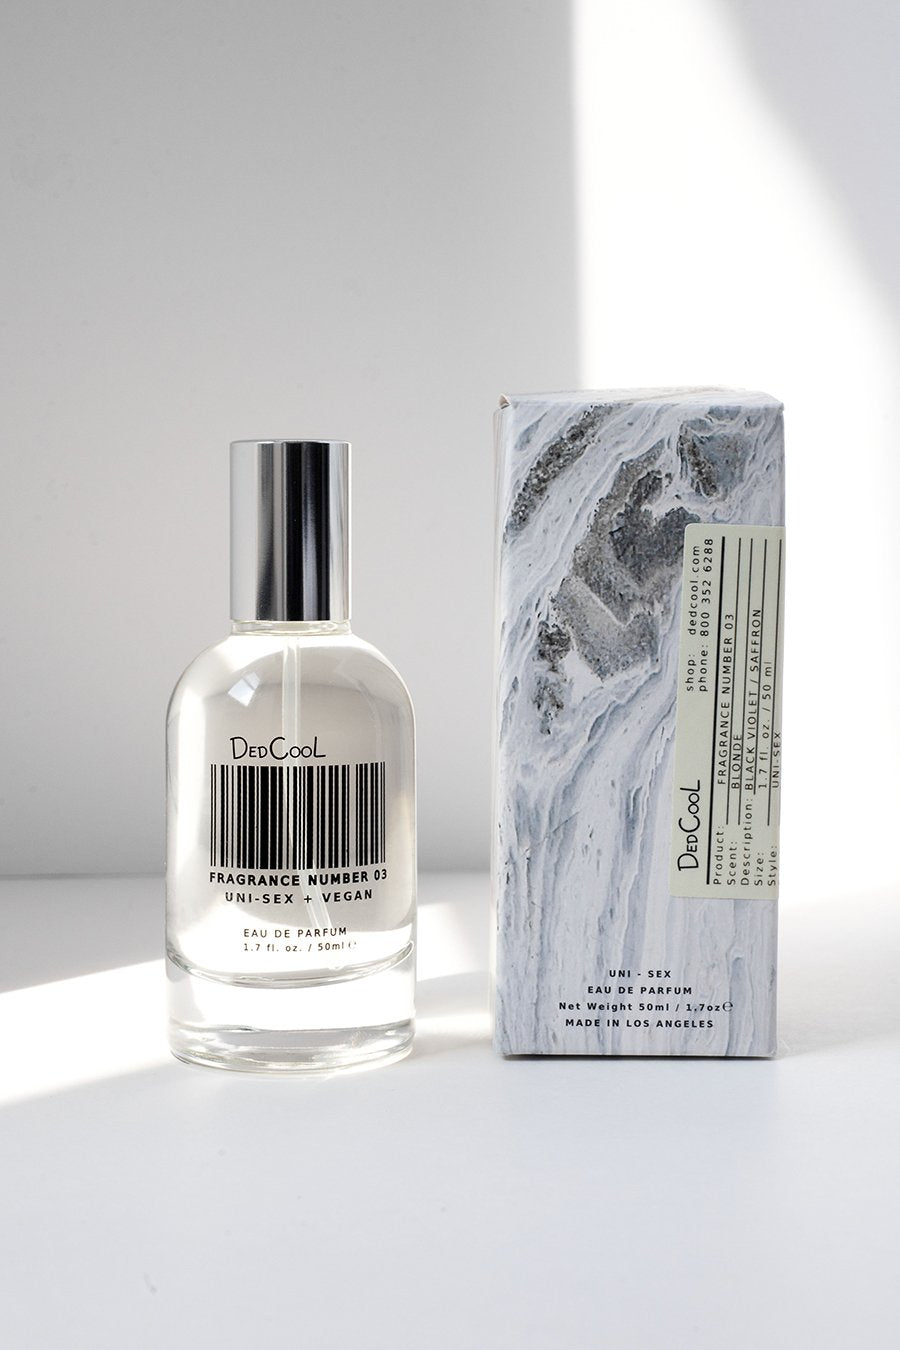 "Dedcool Fragrance 03 ""Blonde"". Uni-sex, Non-Toxic, Vegan Fragrance. Made in Los Angeles. Clean, Natural, Organic, Safe."